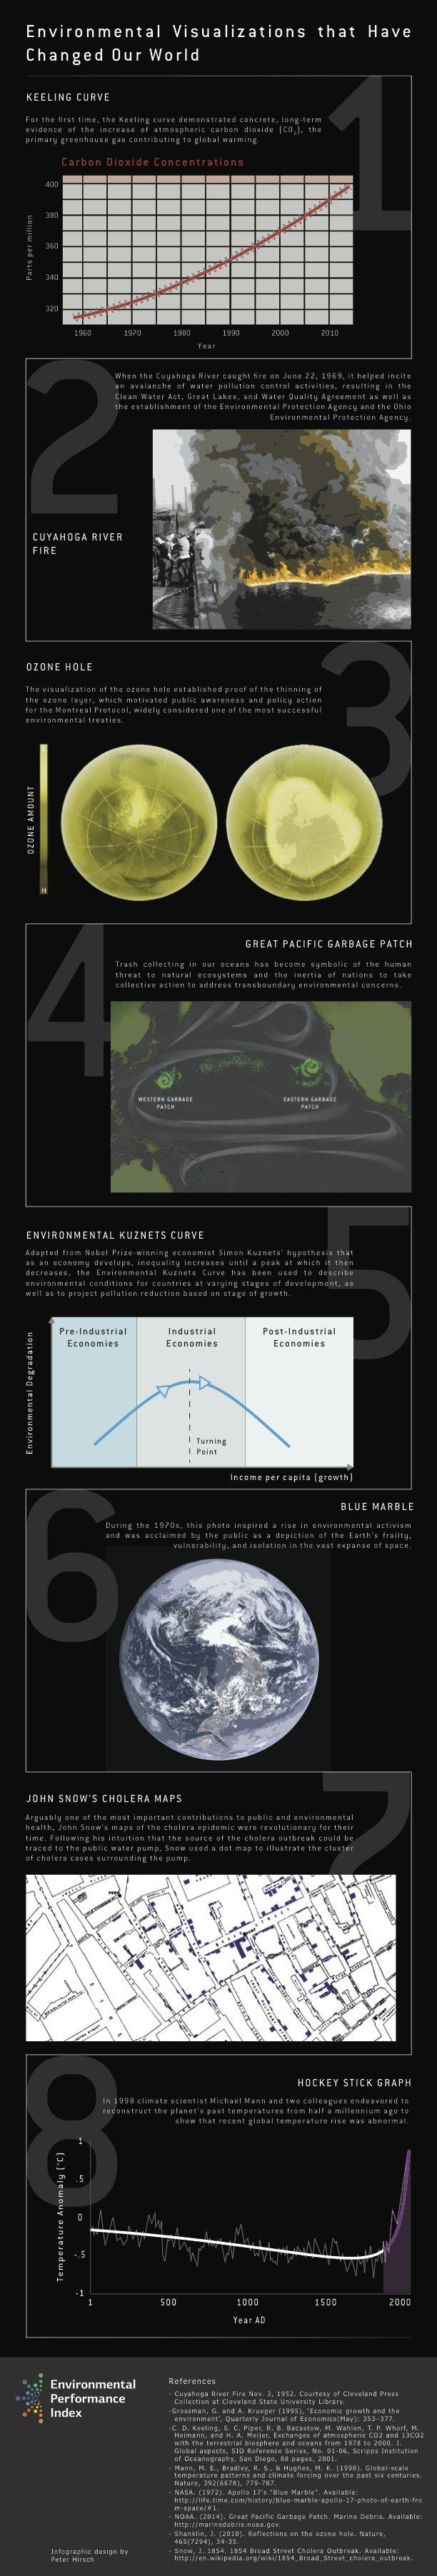 These are eight examples that throughout time have raised our awareness of our environmental impact. Things such as the Cuyahoga River Fire, a diagram of the hole in the ozone layer and hockey stick graph of global temperatures are shown.